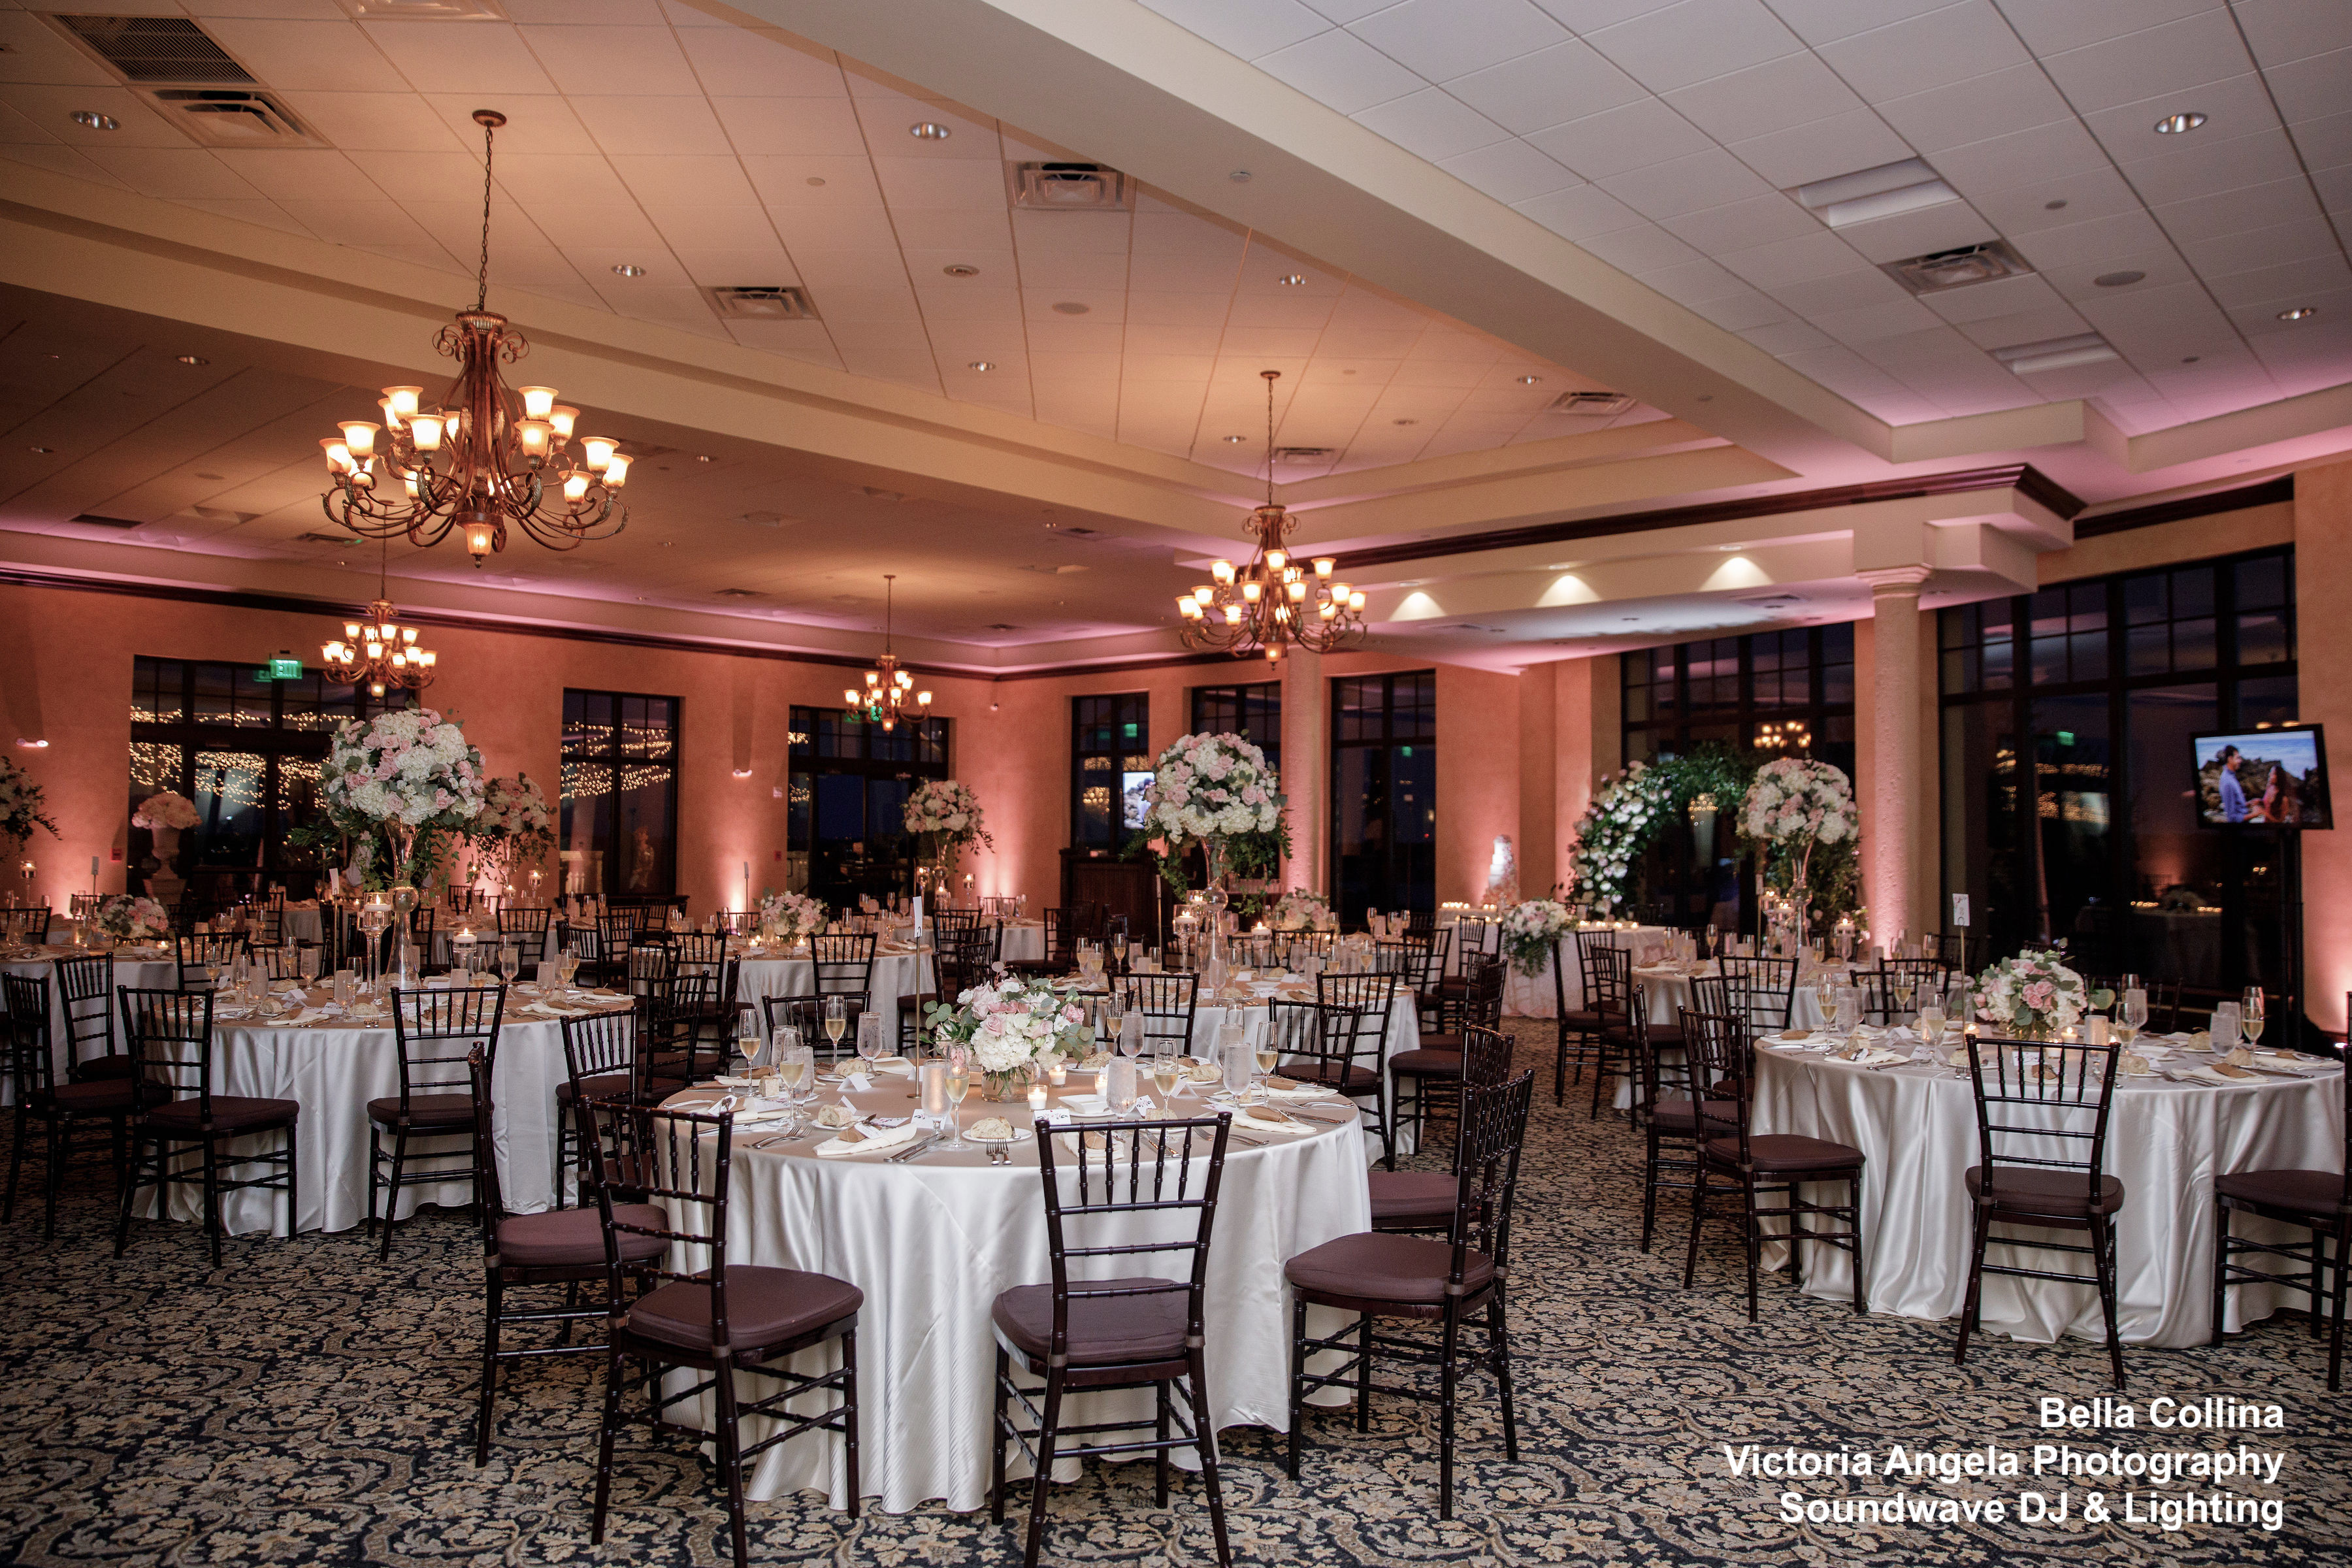 bella collina - orlando wedding venue - orlando wedding dj - soundwave entertainment